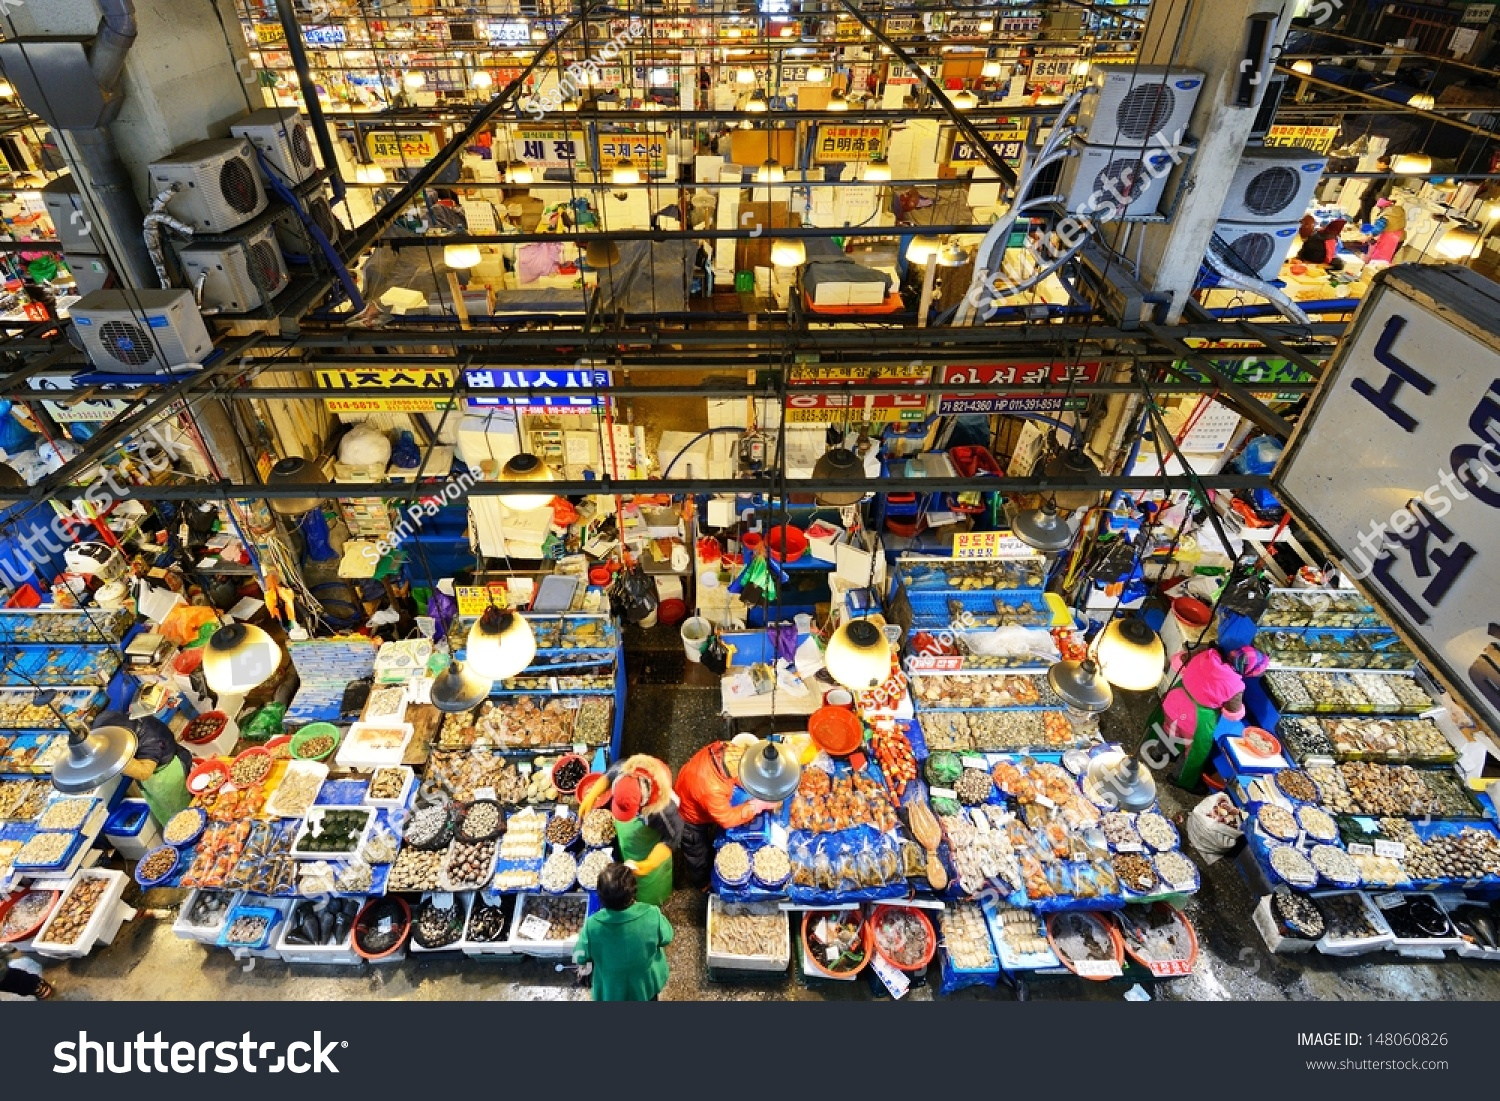 Seoul february 18 aerial view shoppers stock photo for Wholesale fish market near me